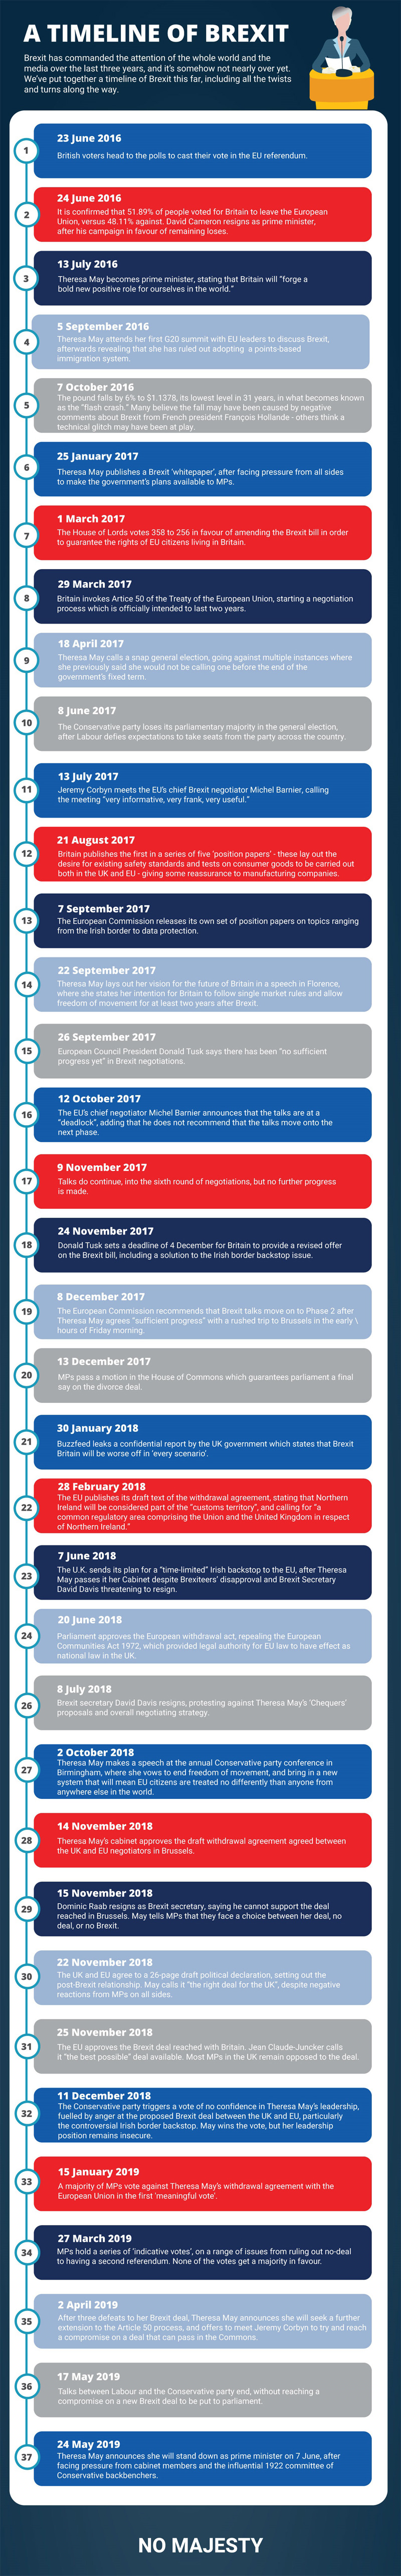 A Timeline of Brexit